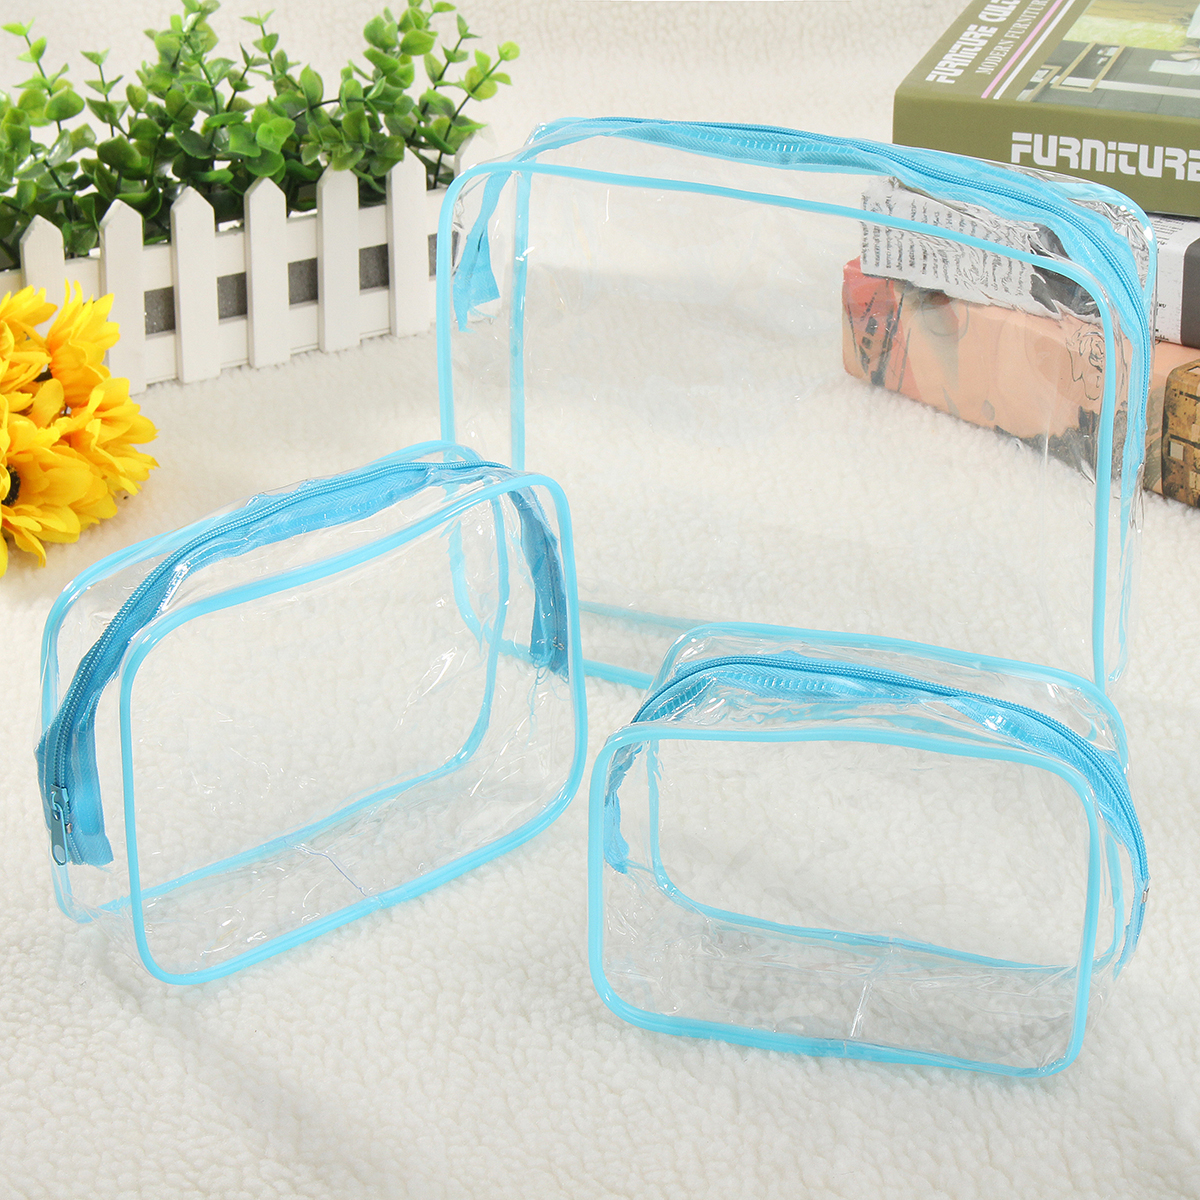 3 Pcs Transparent Cosmetic Bag PVC Travel Organizer Toiletry Makeup Storage Wash Case Waterproof